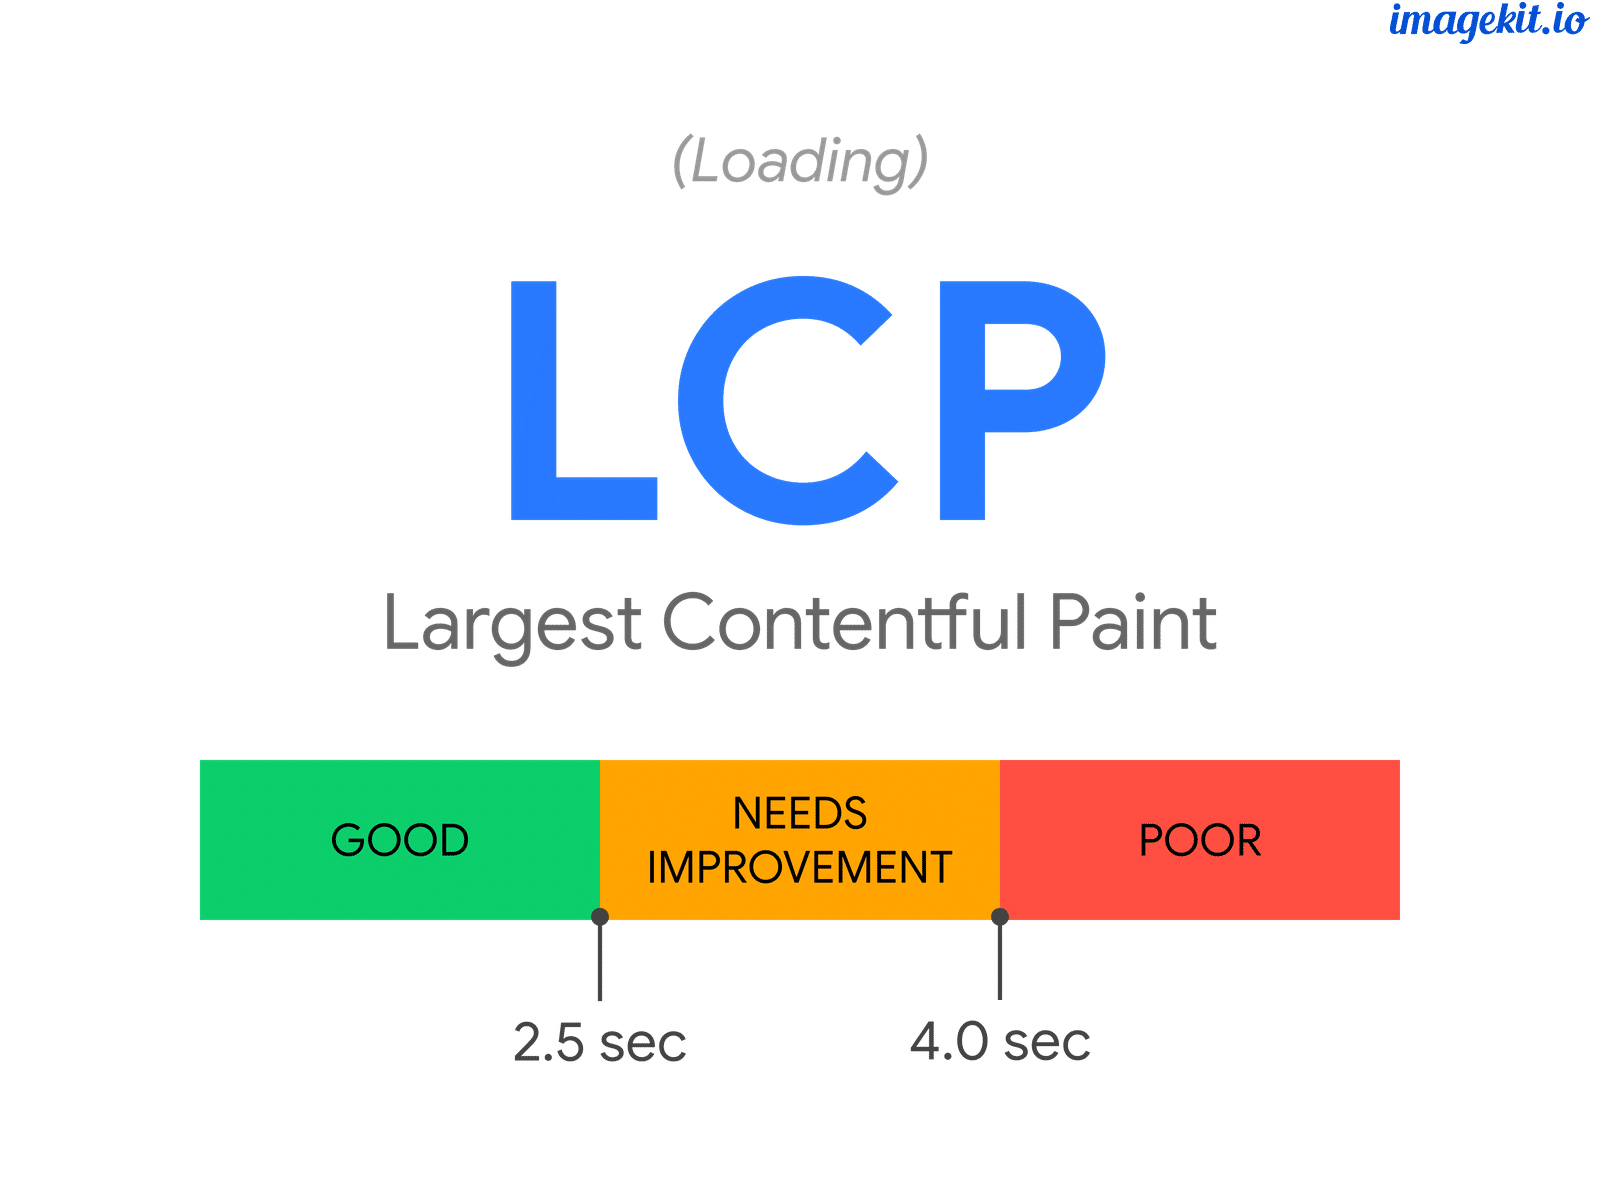 Improve Largest Contentful Paint (LCP) on Your Website With Ease